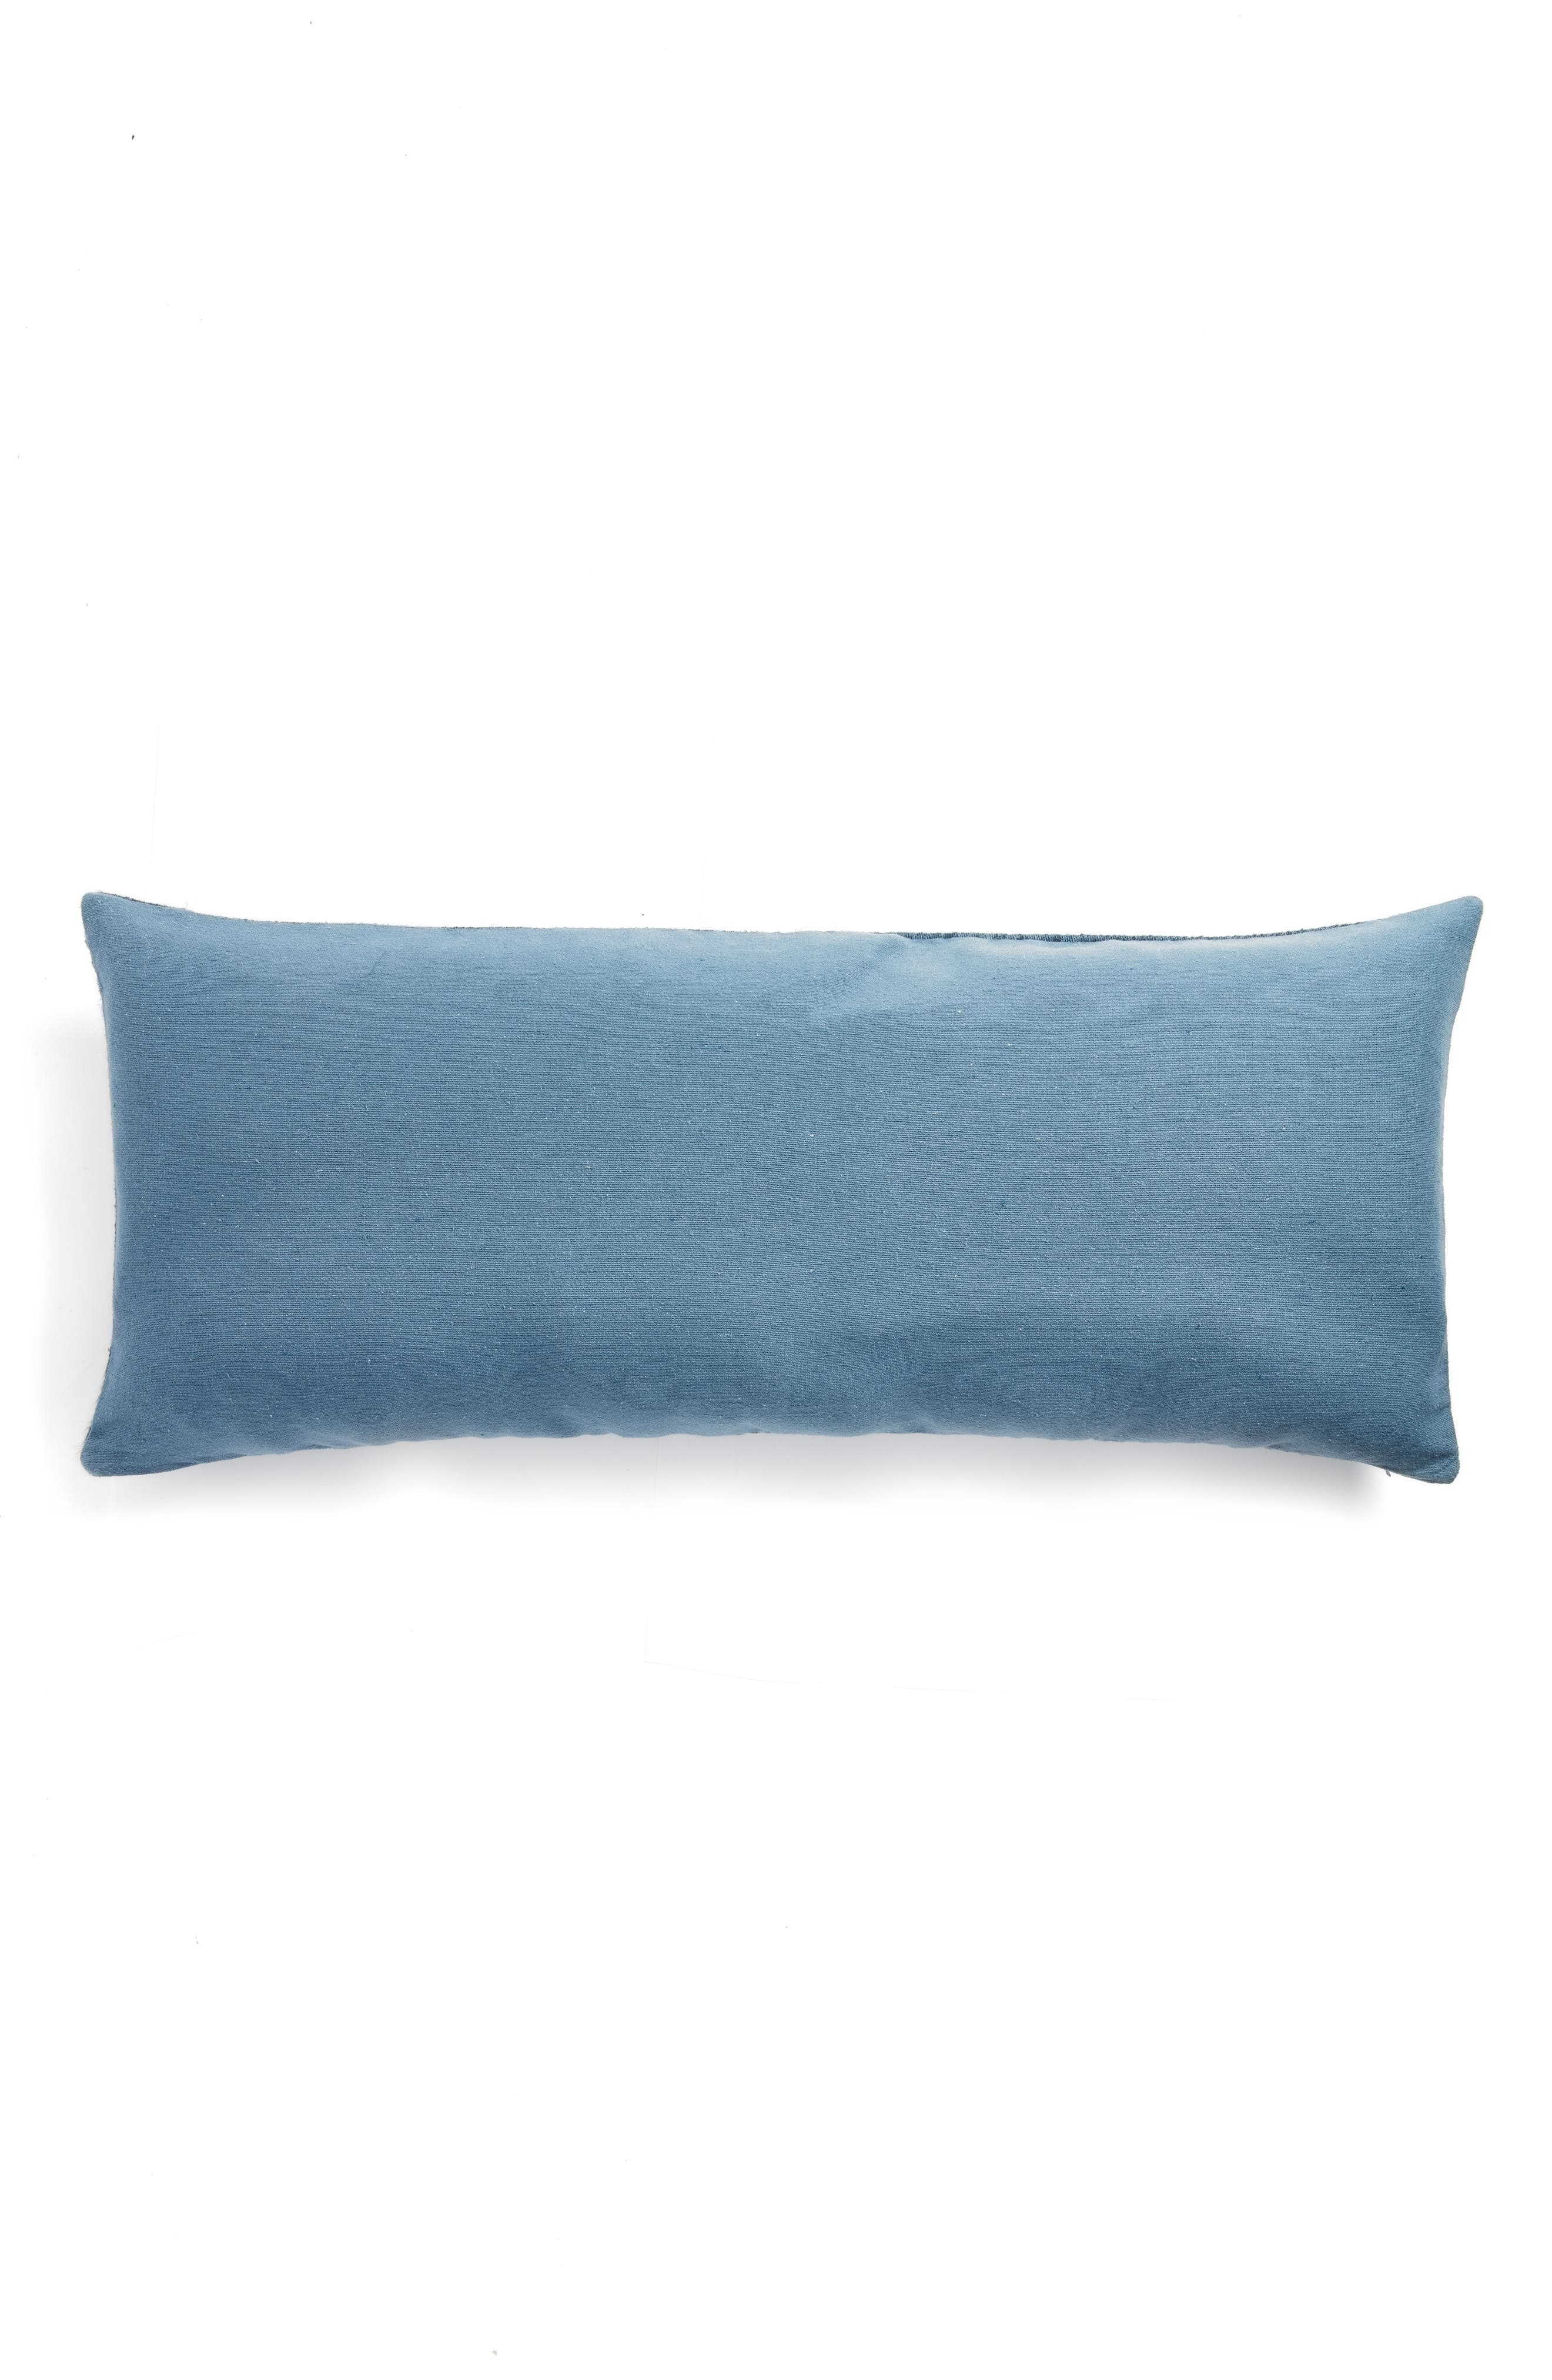 Distressed Geo Accent Pillow,                             Alternate thumbnail 4, color,                             Blue Mirage